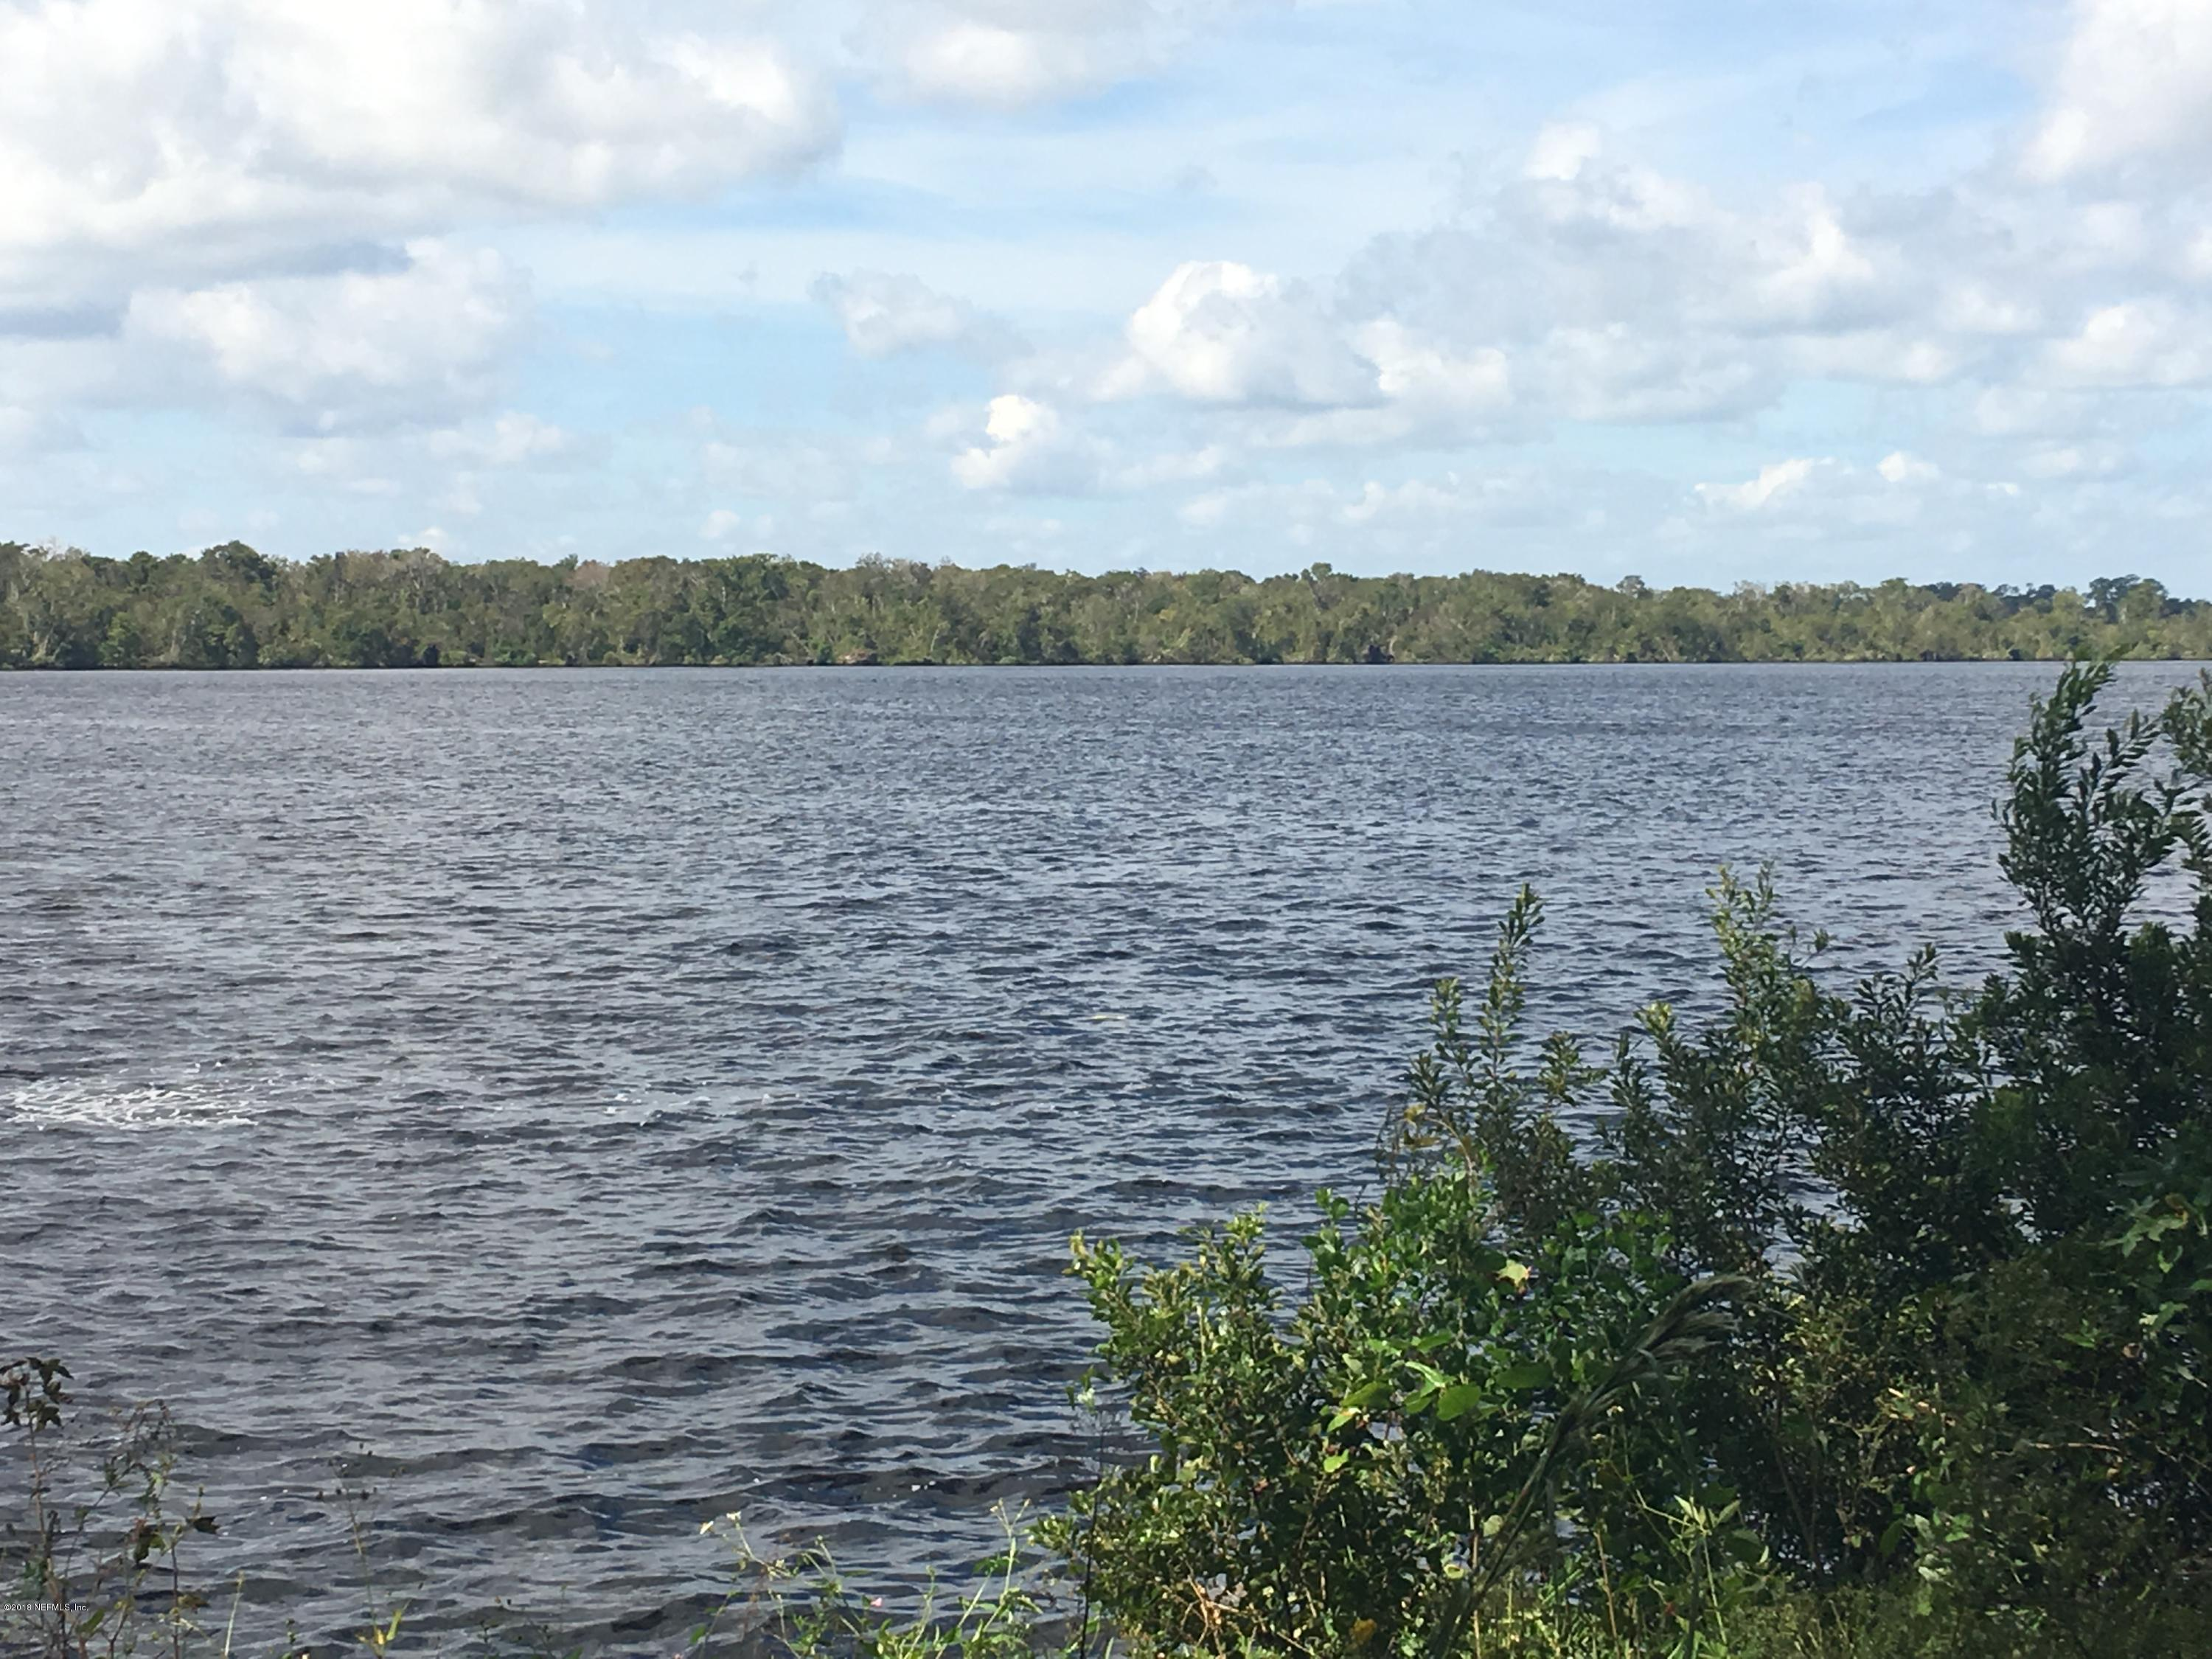 333 HIGHWAY 17, EAST PALATKA, FLORIDA 32131, ,Vacant land,For sale,HIGHWAY 17,966805